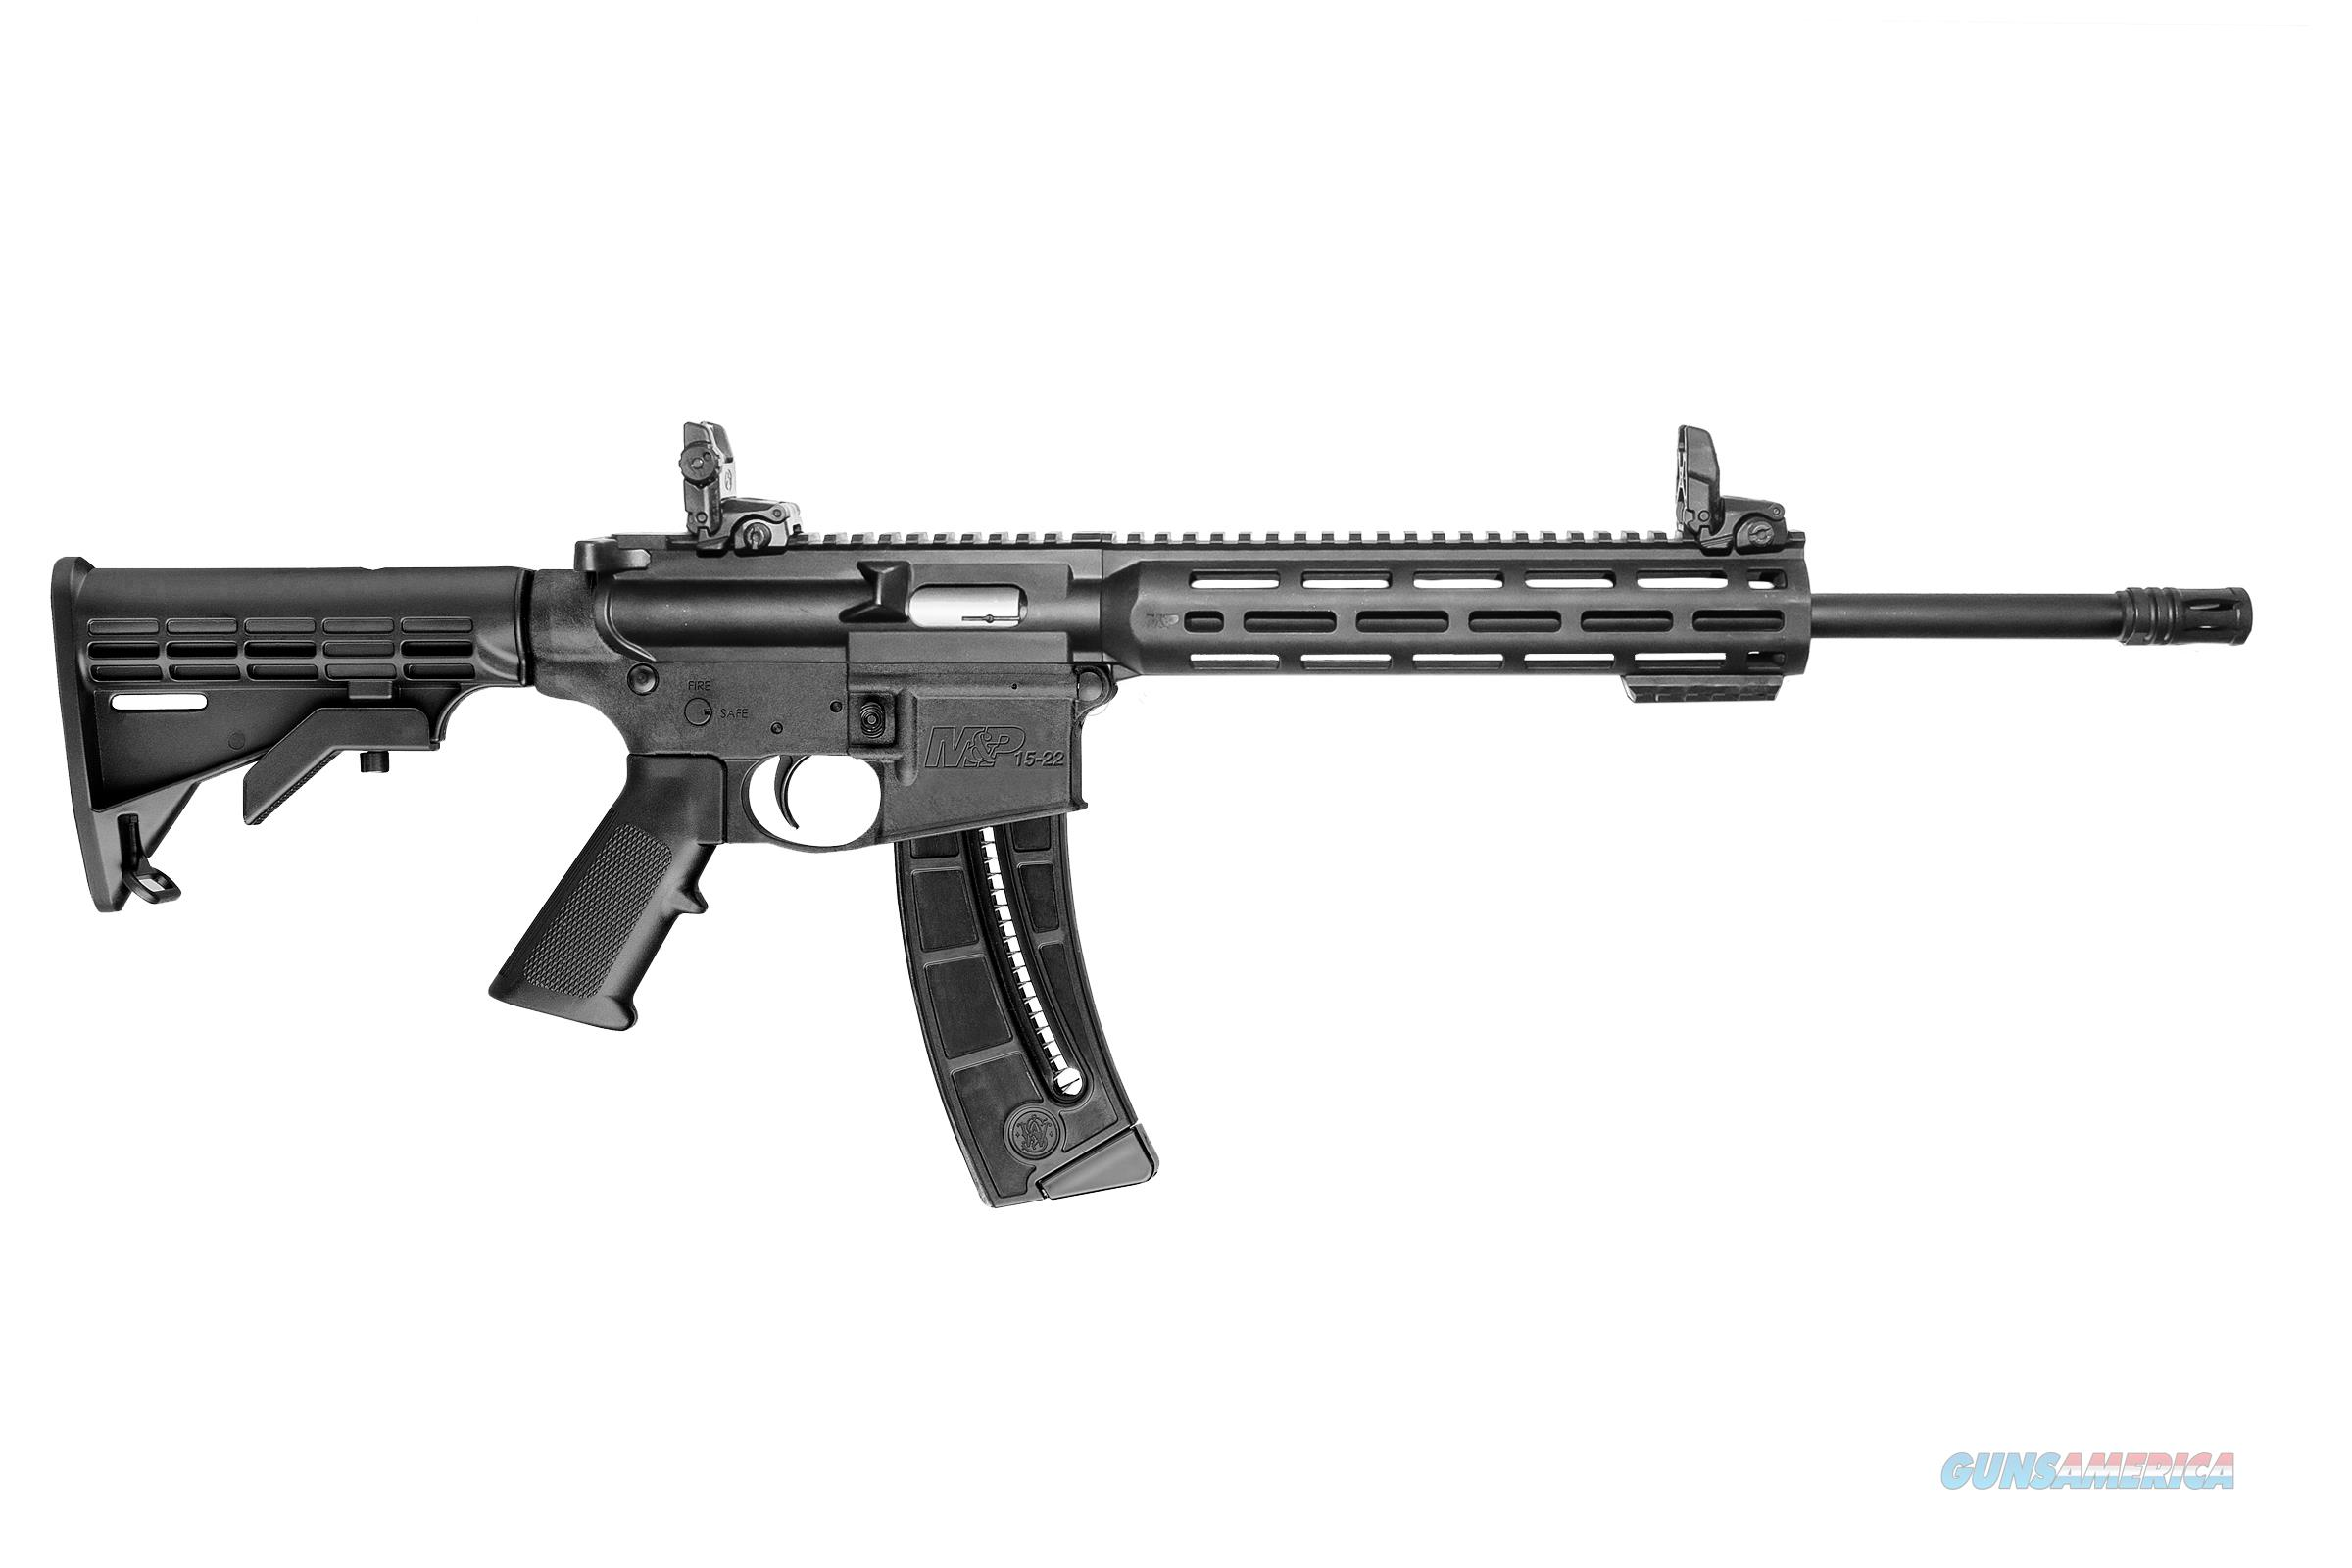 Smith and Wesson M&P15-22 Sport .22 LR Semi-Auto AR Style Rifle 10208 022188868203  Guns > Rifles > Smith & Wesson Rifles > M&P